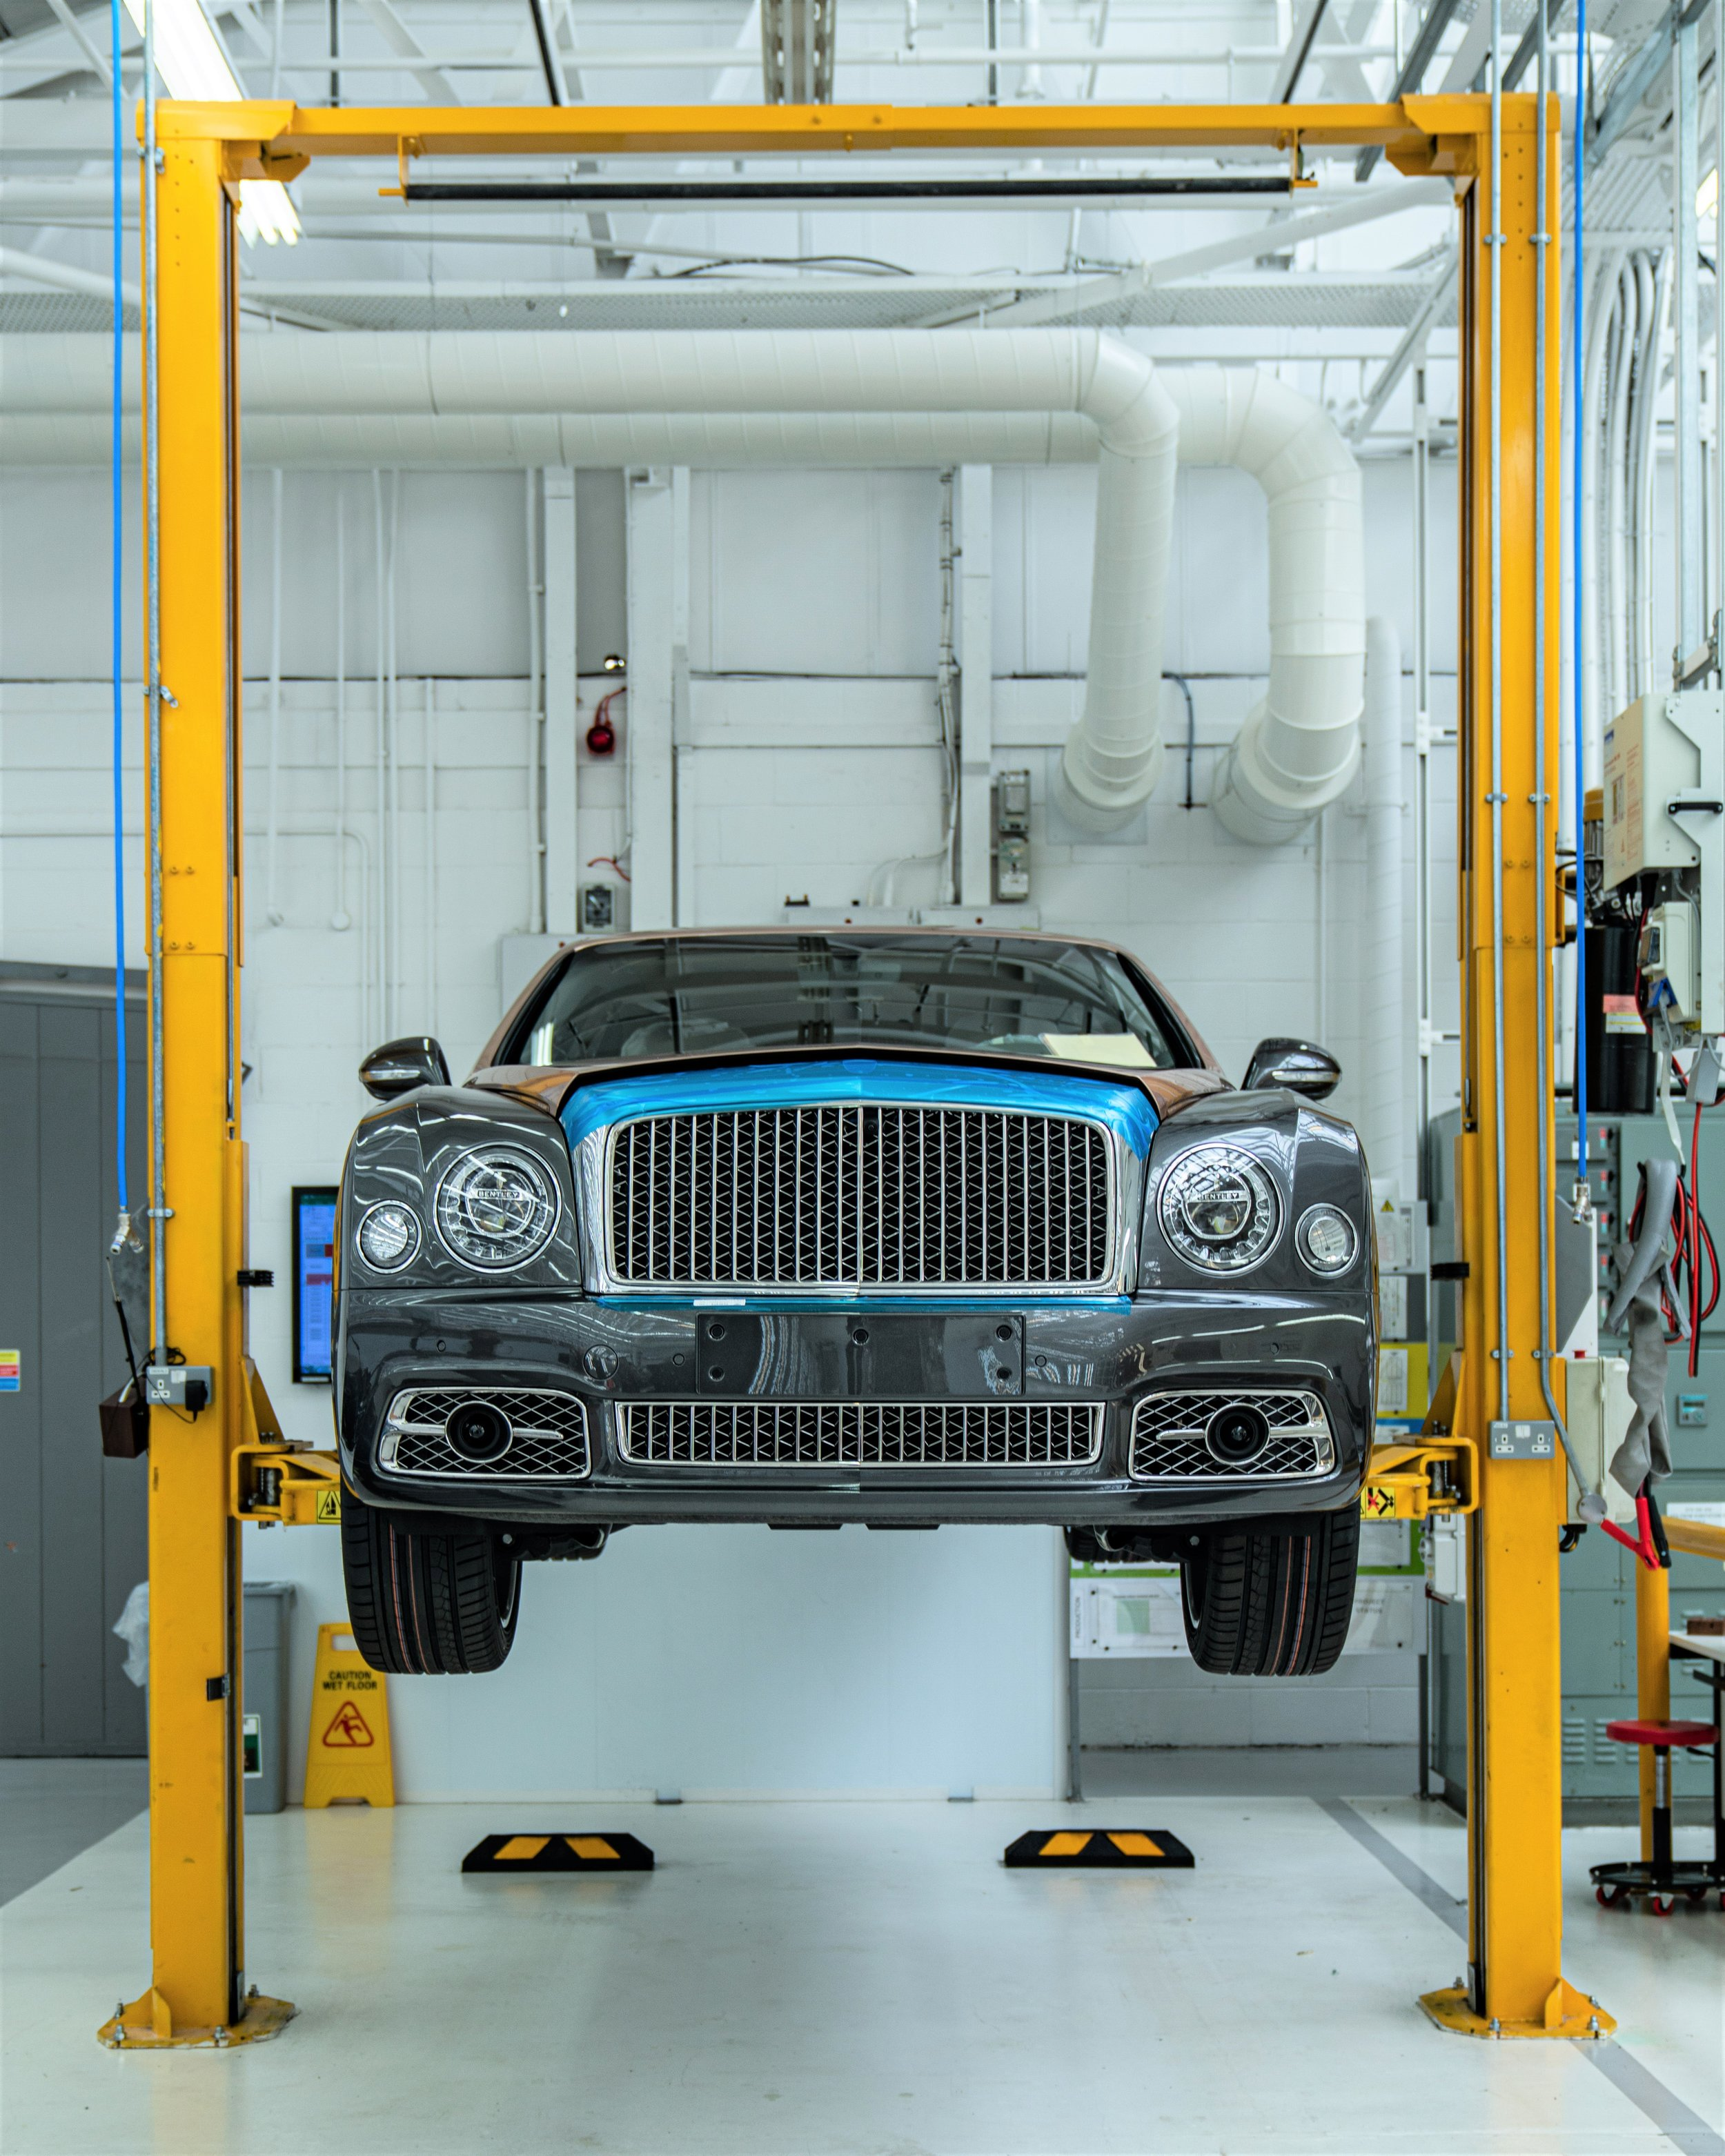 Bentley Mulsanne, at the factory